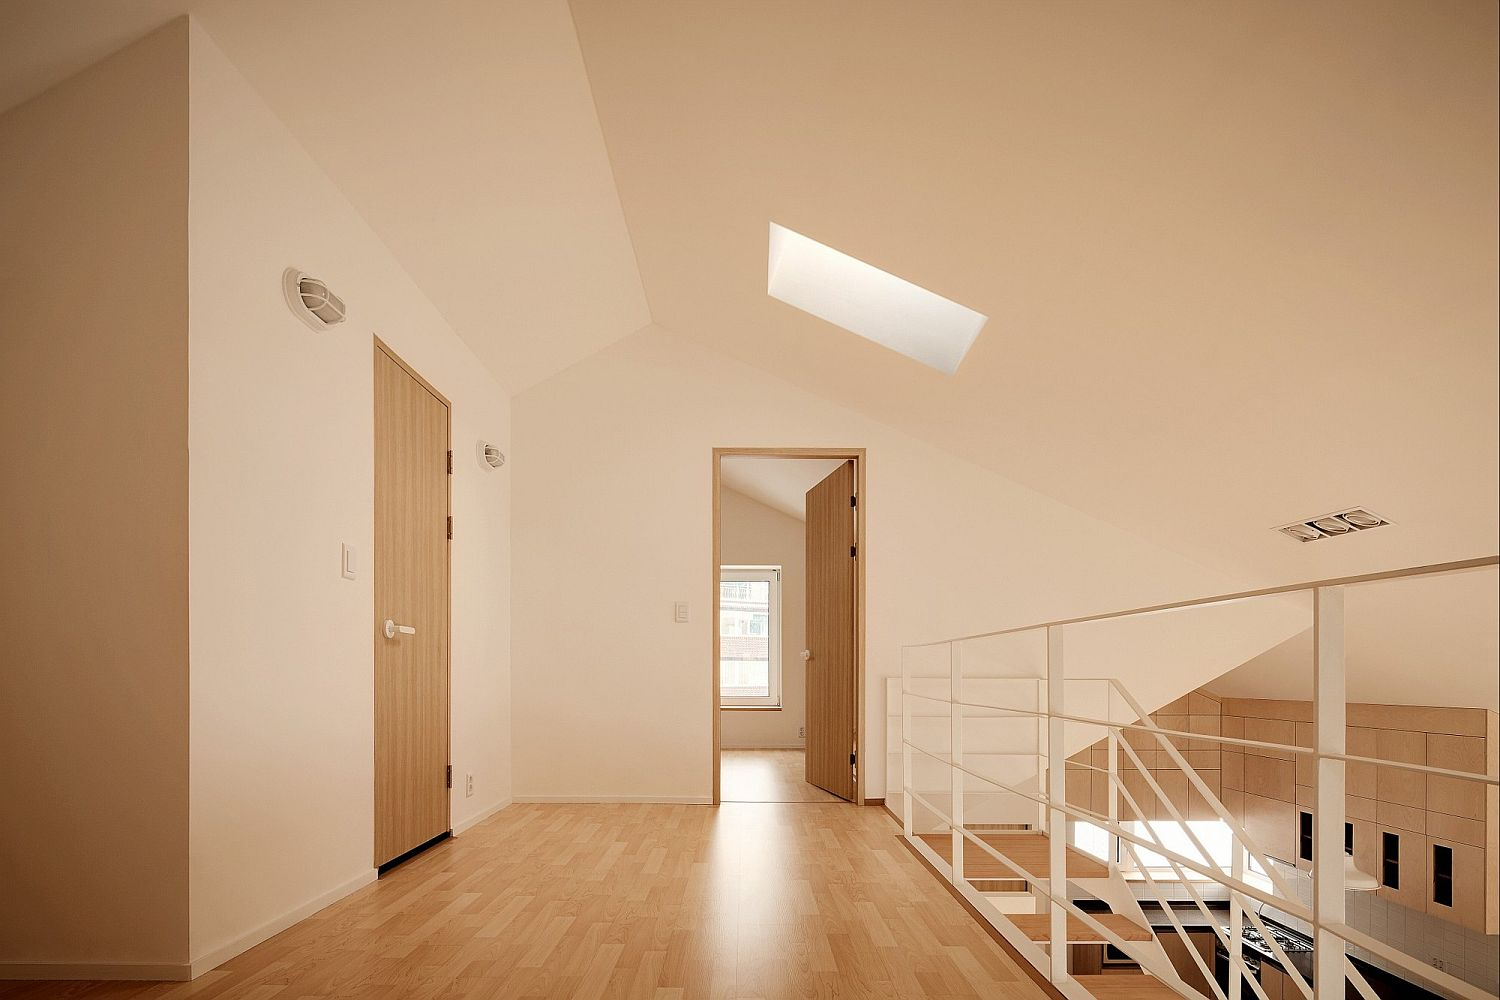 Cost-effective multi-generational house in South Korea